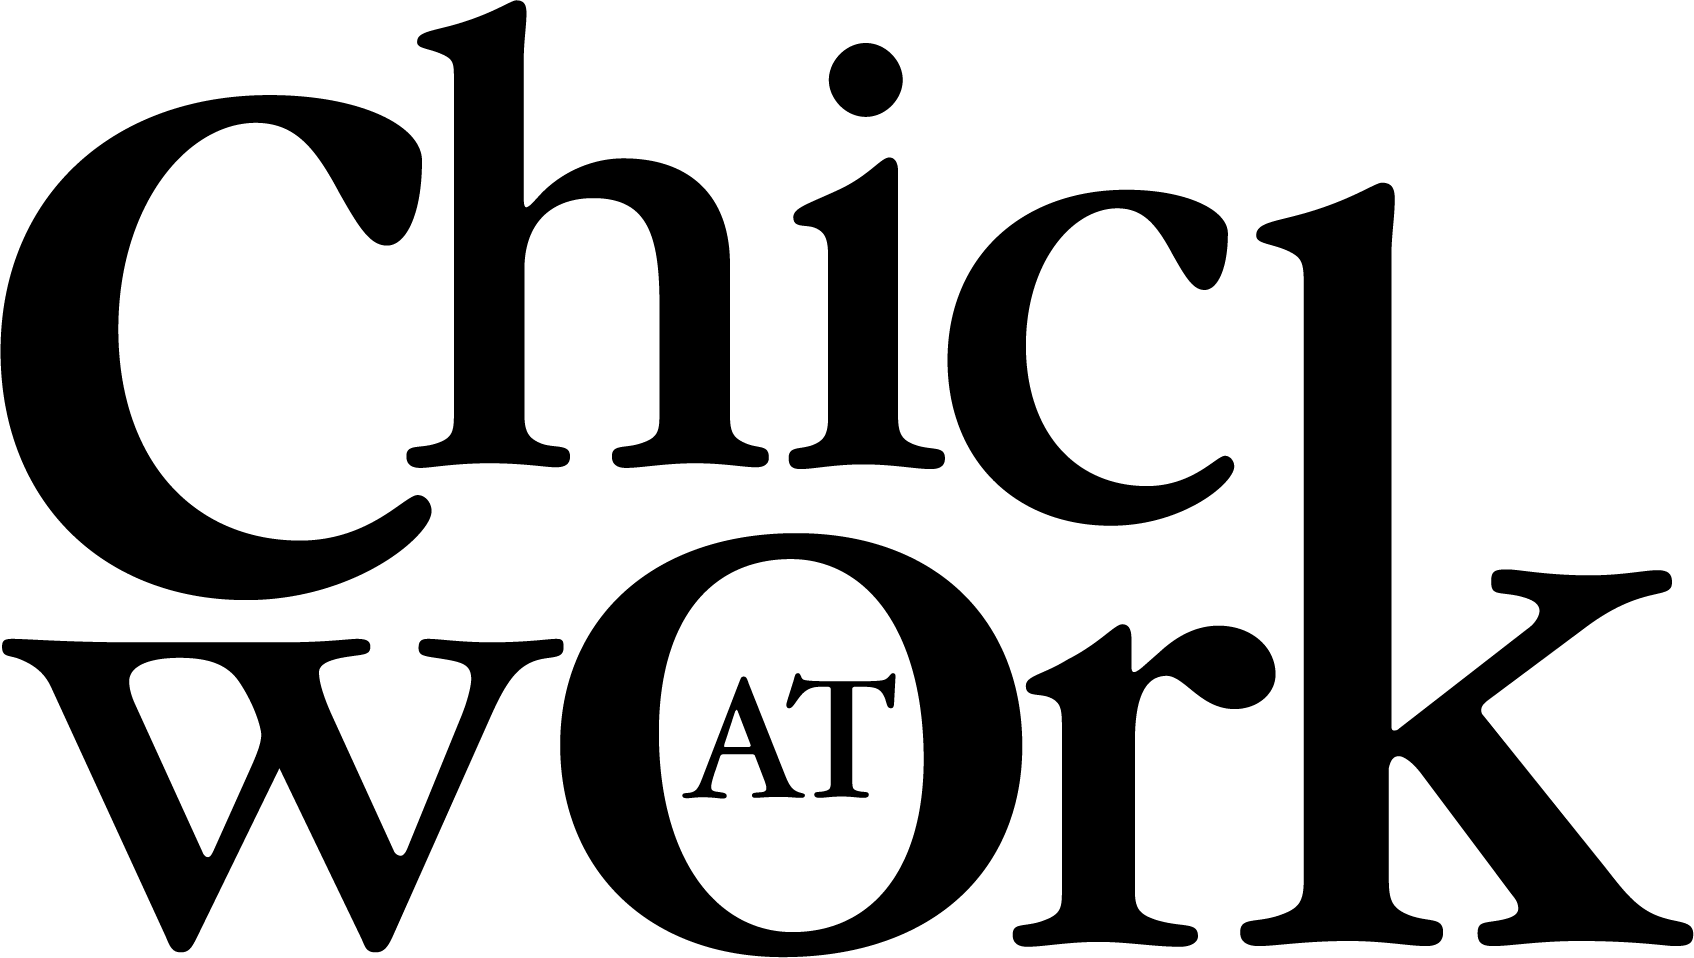 Logo_ChicatWork_noir_fond transparent.png